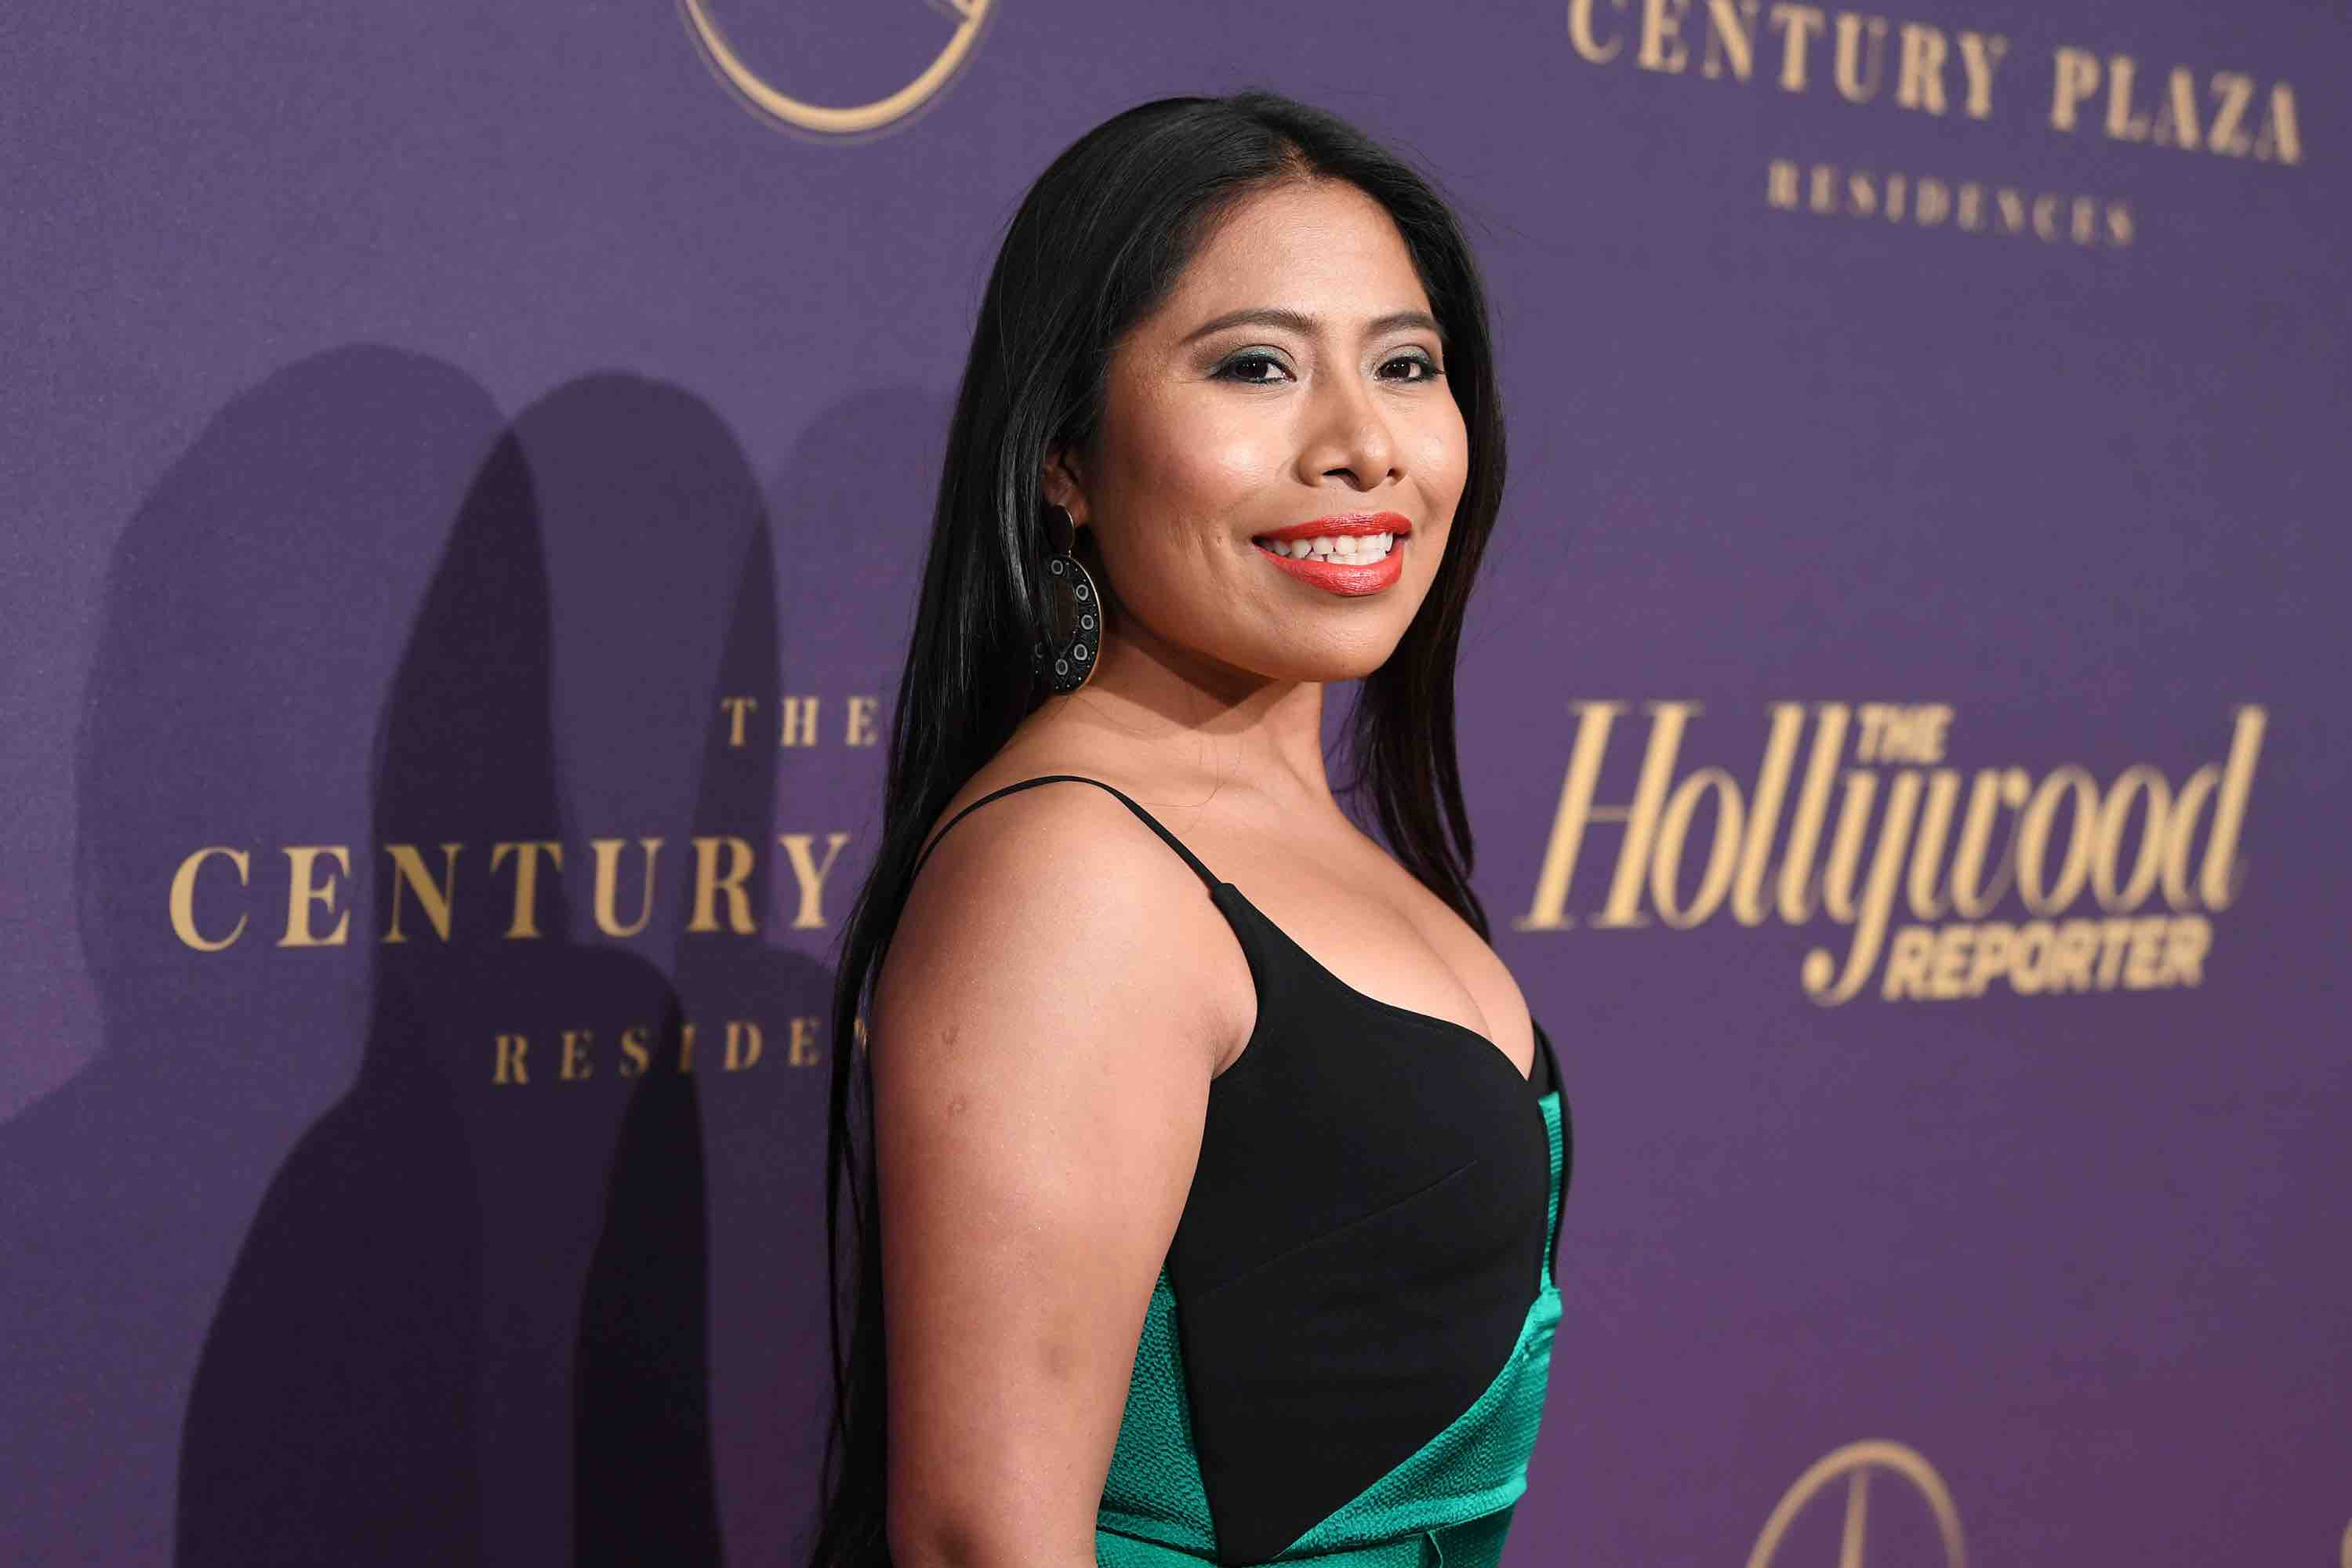 5 Times Yalitza Aparicio Broke Barriers for Indigenous Women